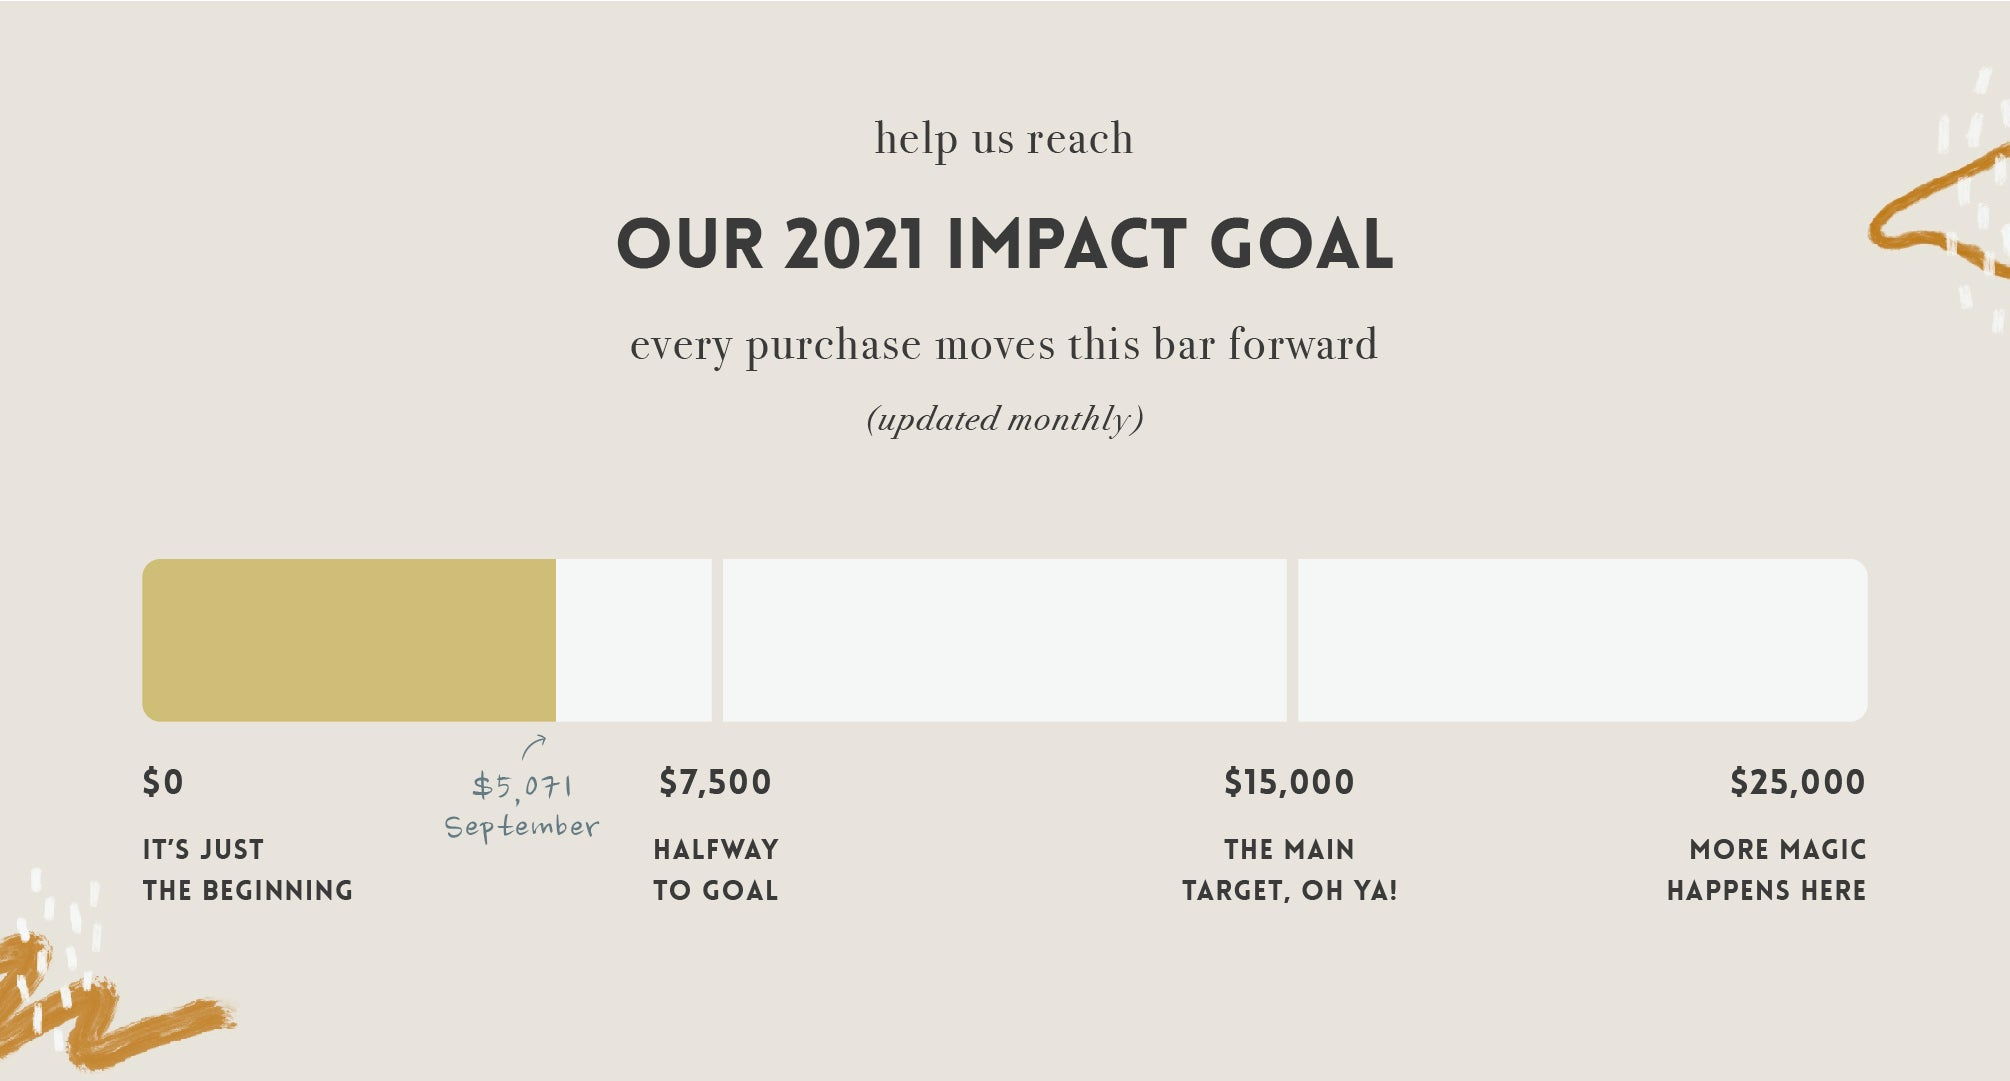 2021 Impact Goal for Scoria and Right To Play until September $5,071.